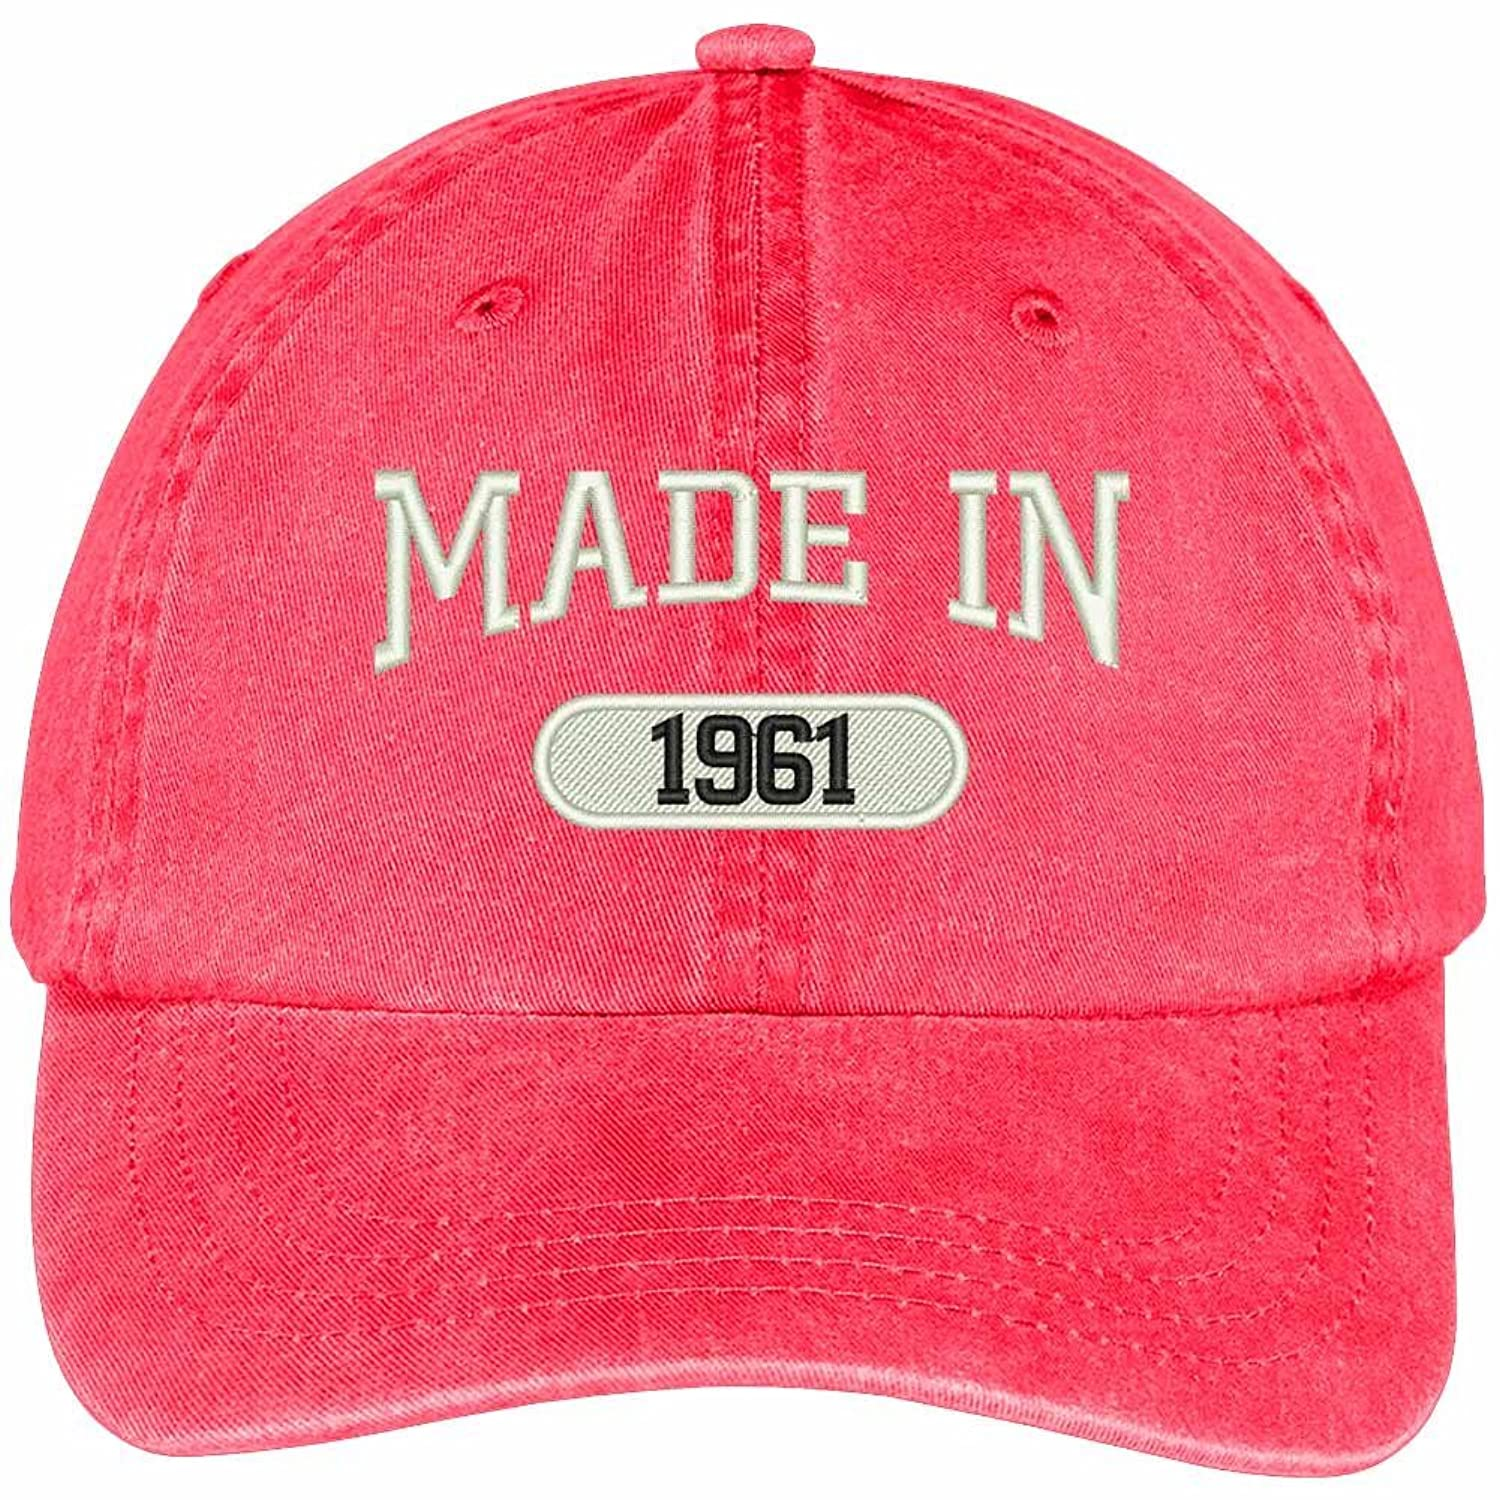 56th Birthday - Made In 1961 Embroidered Low Profile Washed Cotton Baseball Cap